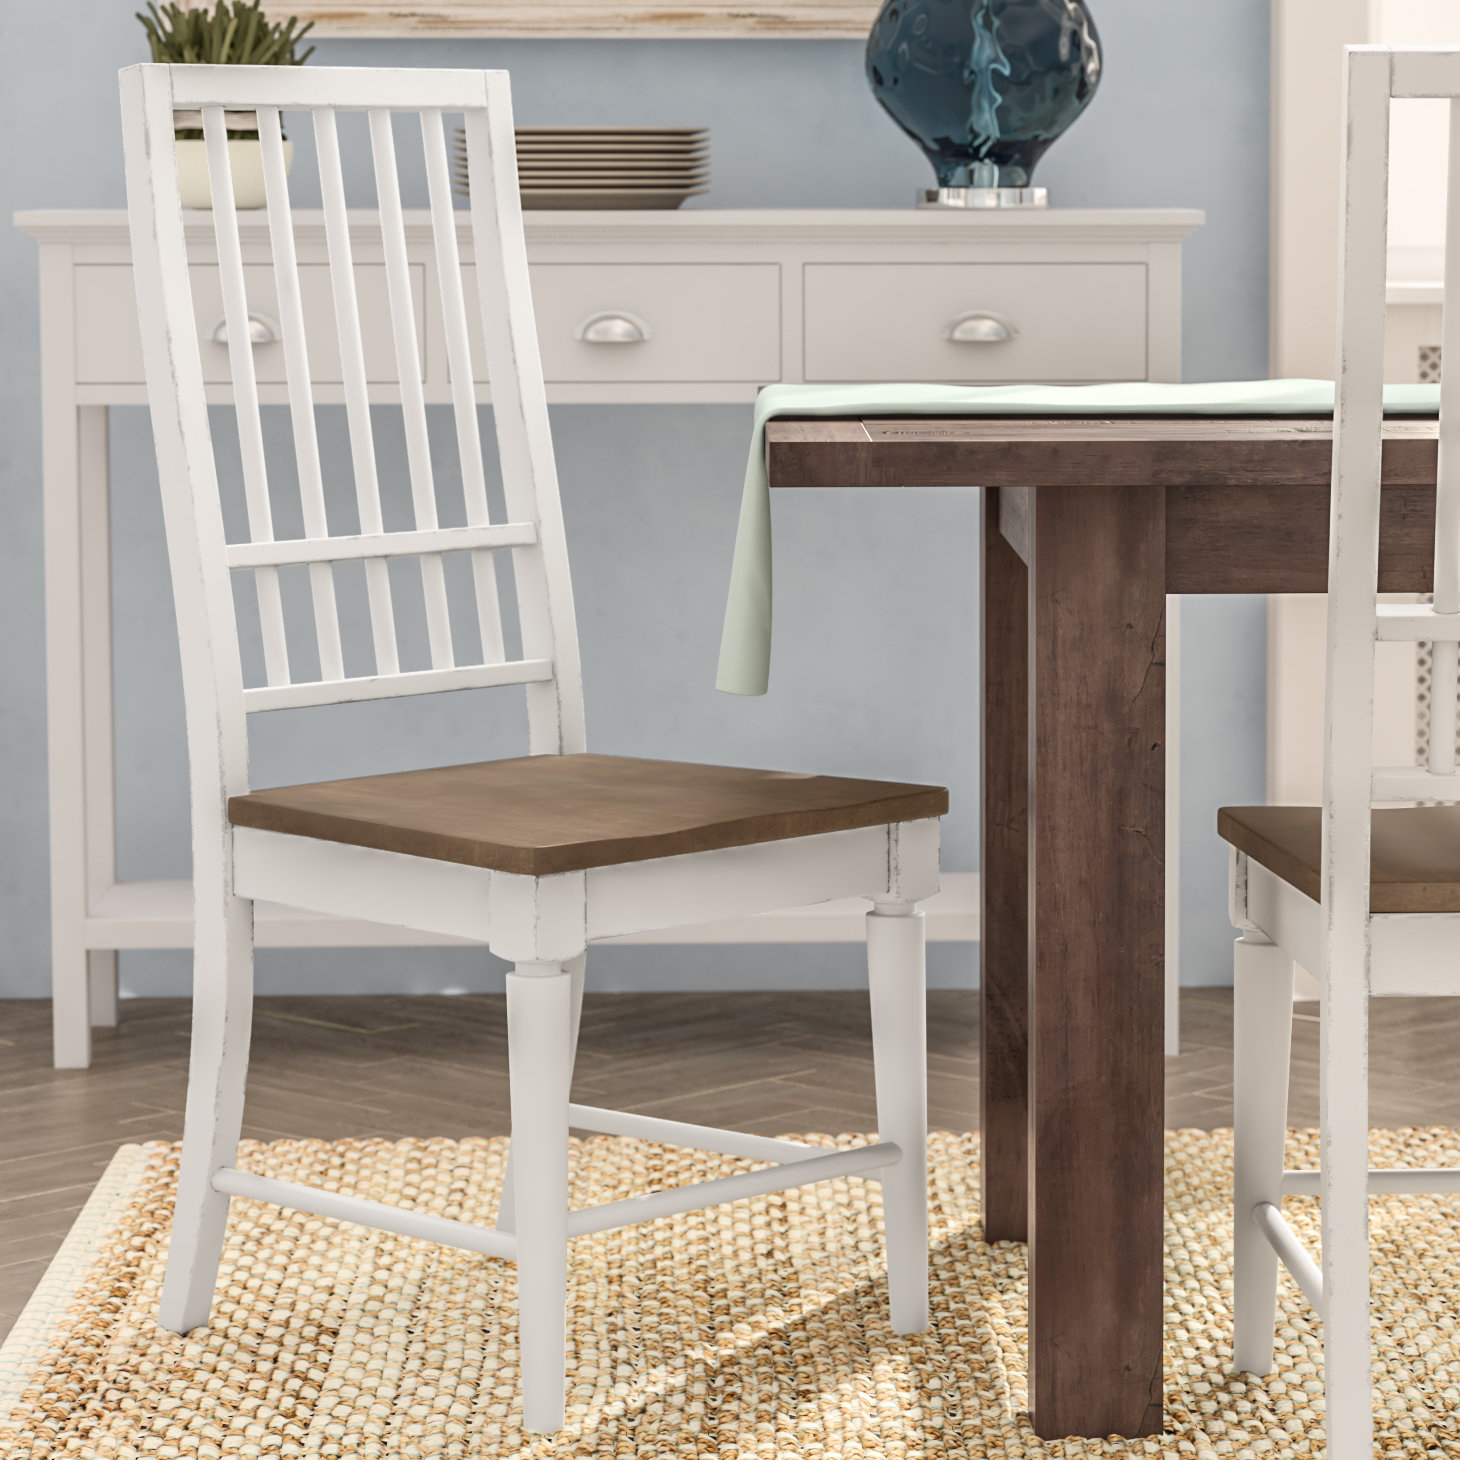 Pineville Dining Chair Regarding Most Popular Pineville Dining Sideboards (View 17 of 20)